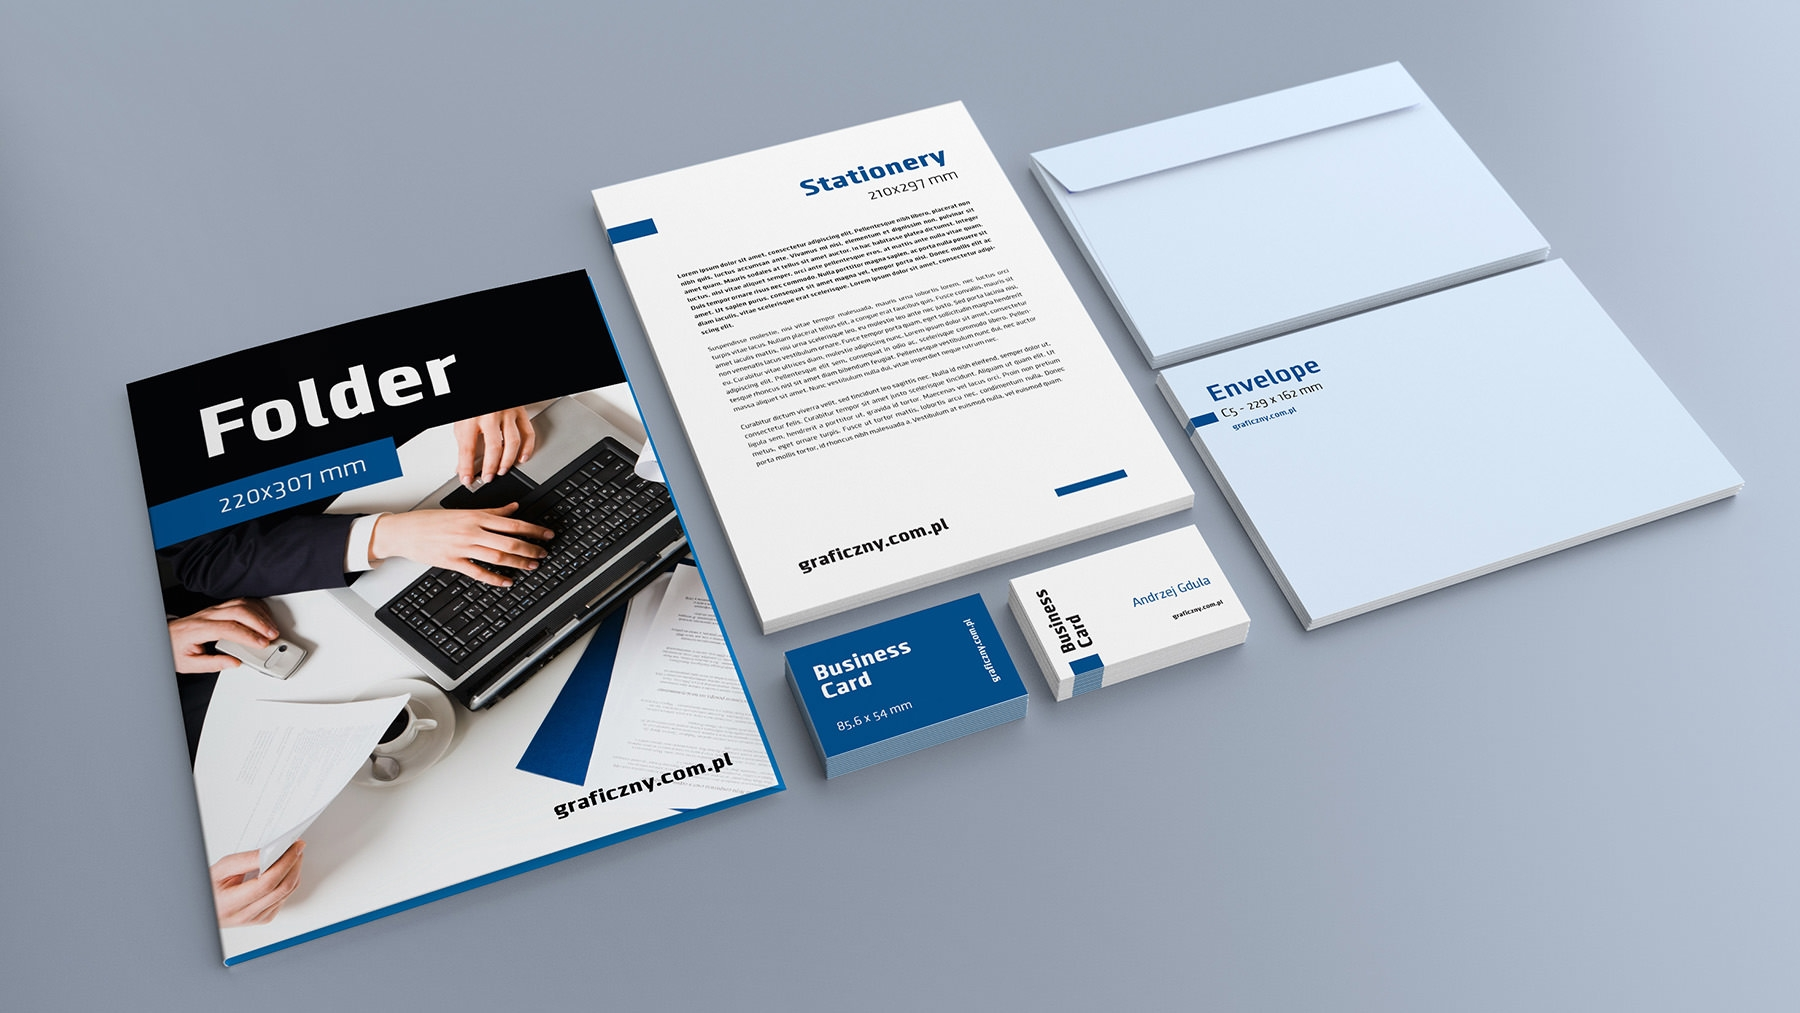 10+ free vector psd corporate identity mockups | freecreatives, Powerpoint templates